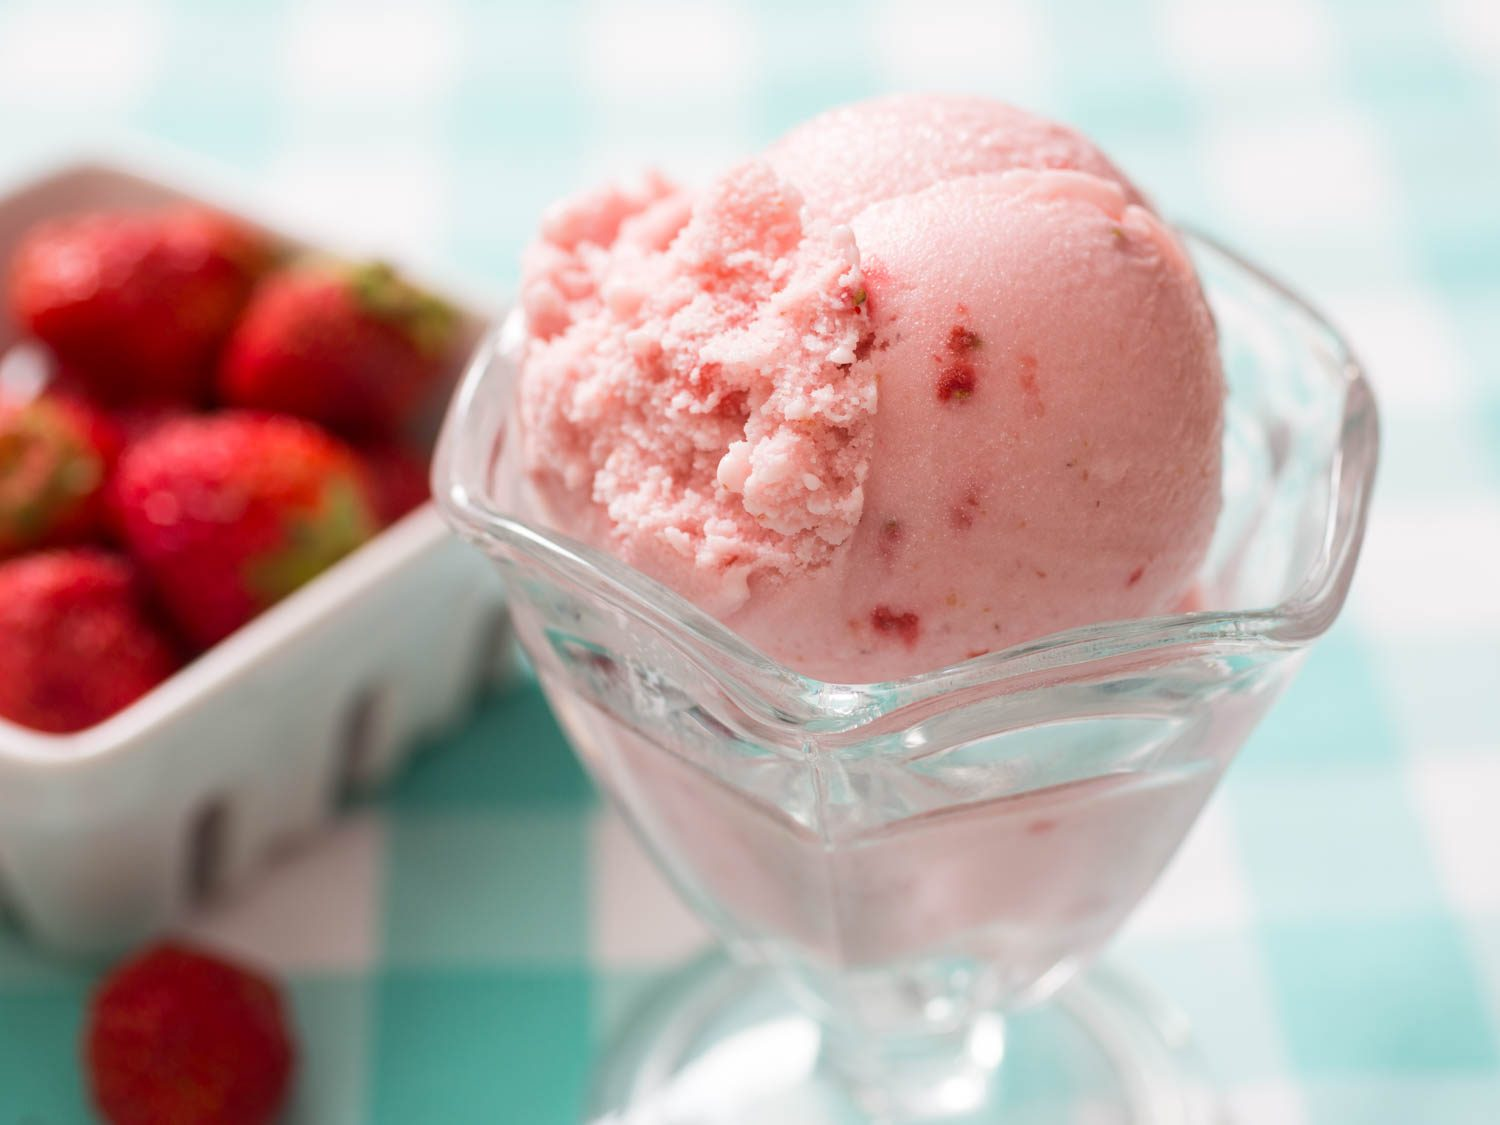 20150706-strawberry-ice-cream-vicky-wasik-4-1500x1125.jpg